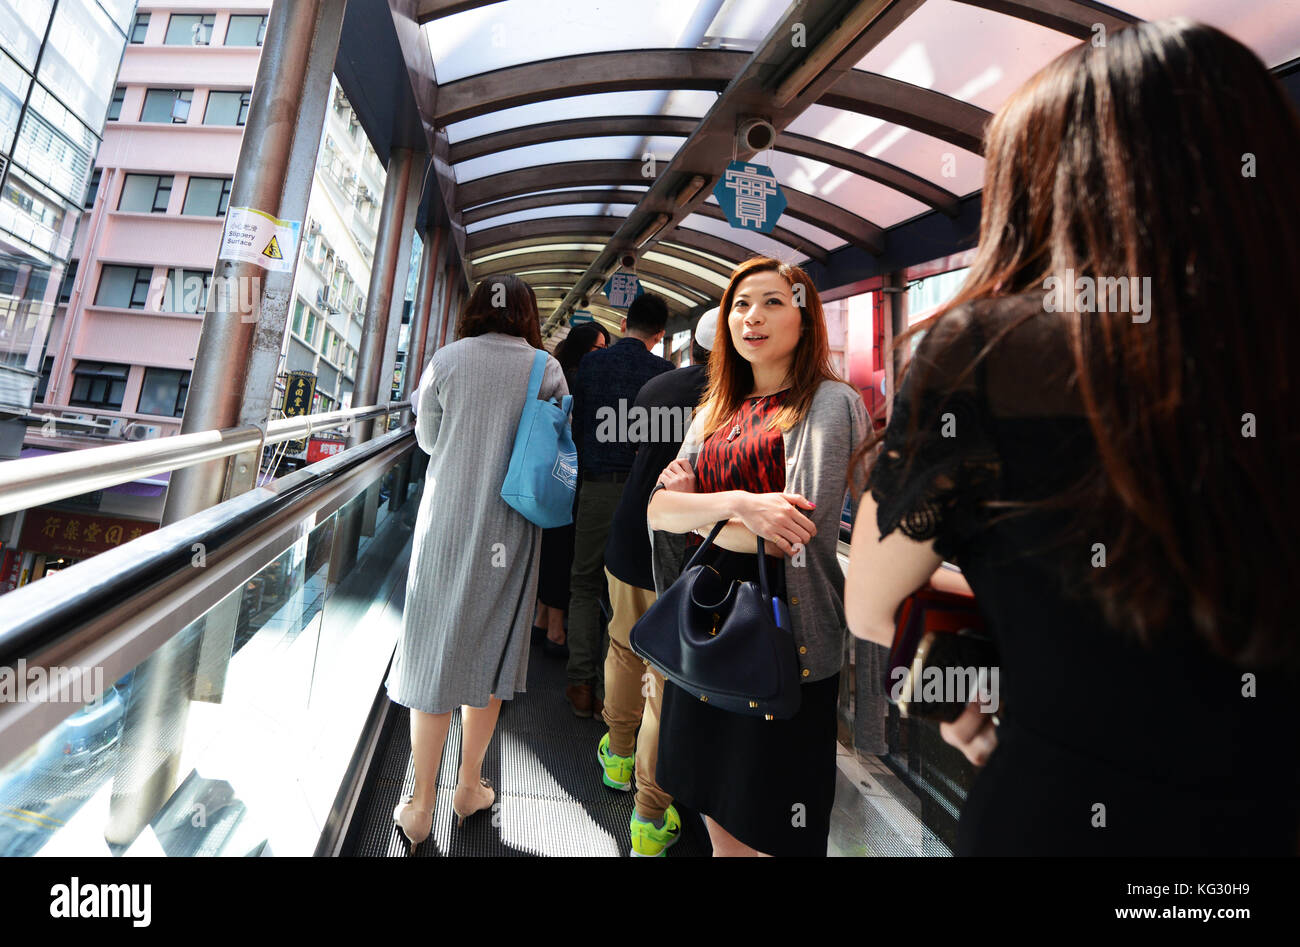 The Central–Mid-Levels escalator and walkway system in Hong Kong is the longest outdoor covered escalator system - Stock Image